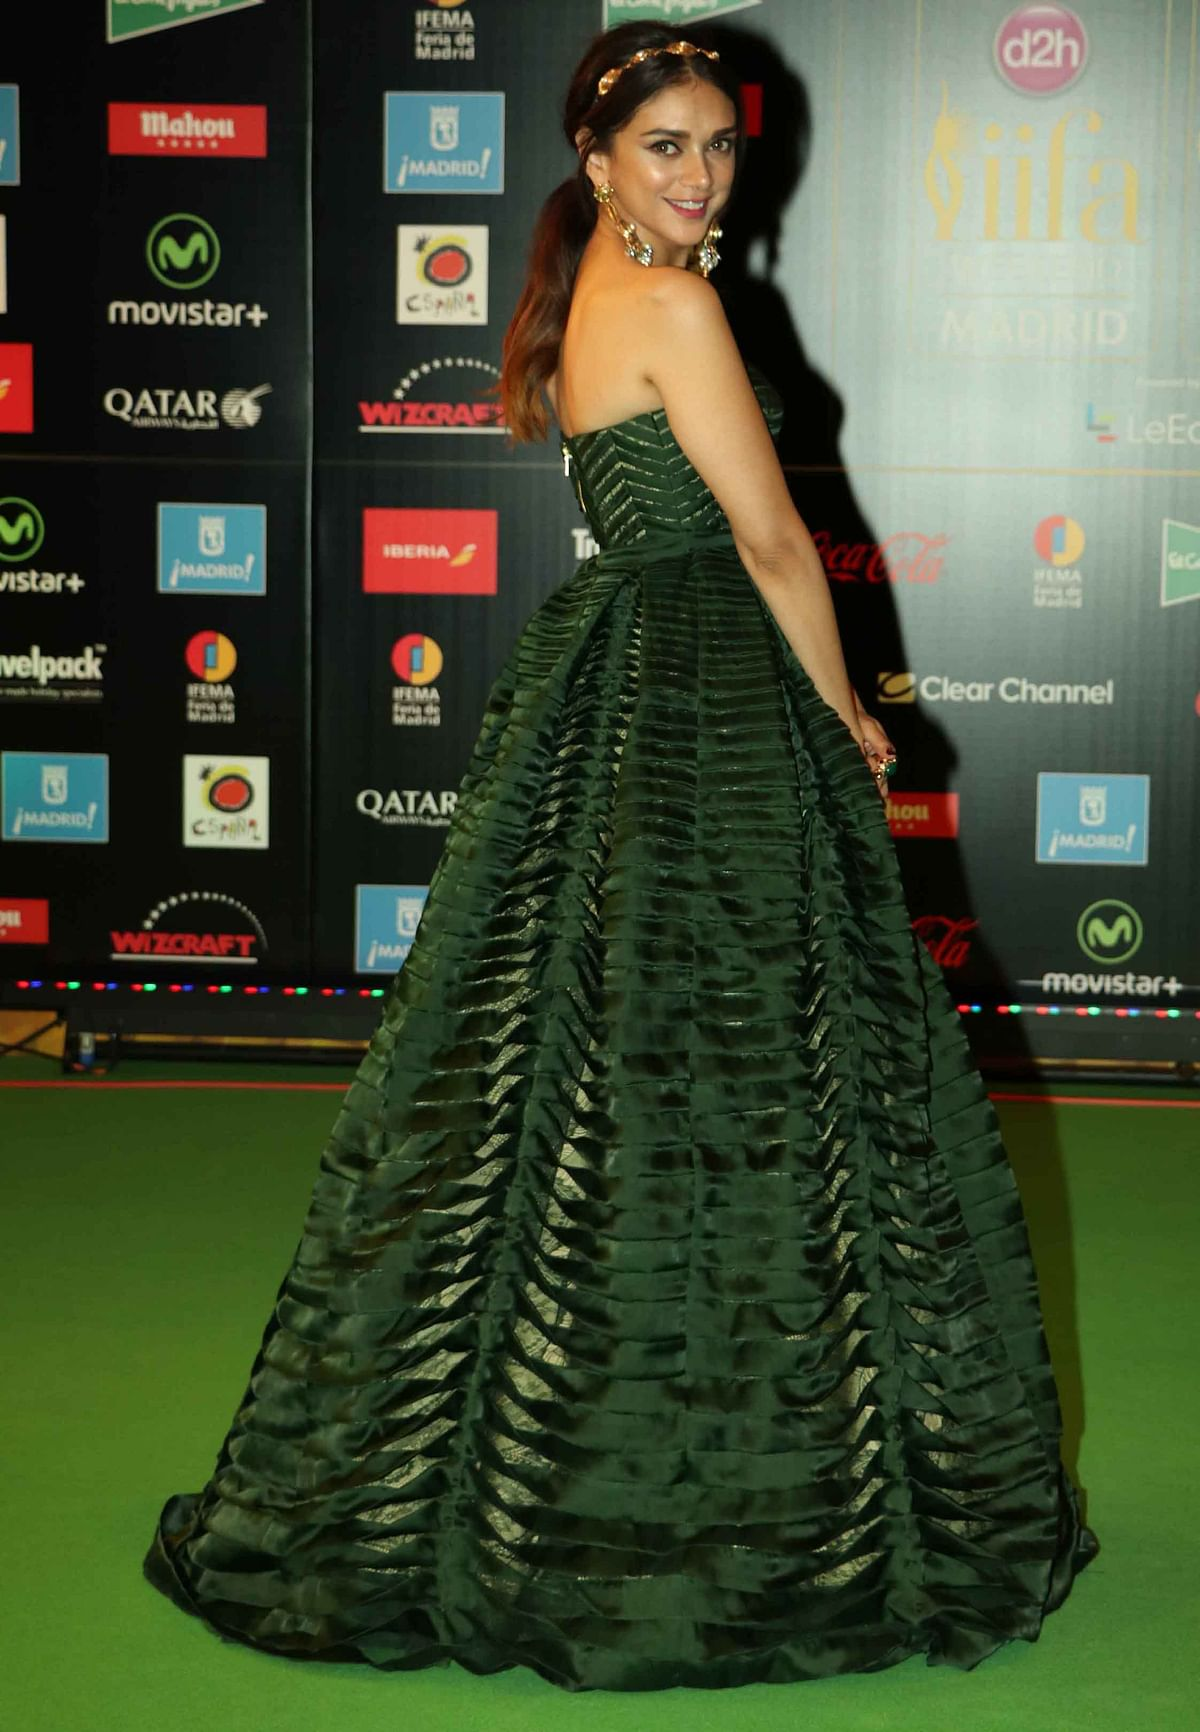 Aditi Rao Hydari in  a Shantanu and Nikhil gown teaming it up with an Outhouse headband and earrings. (Photo: AP)